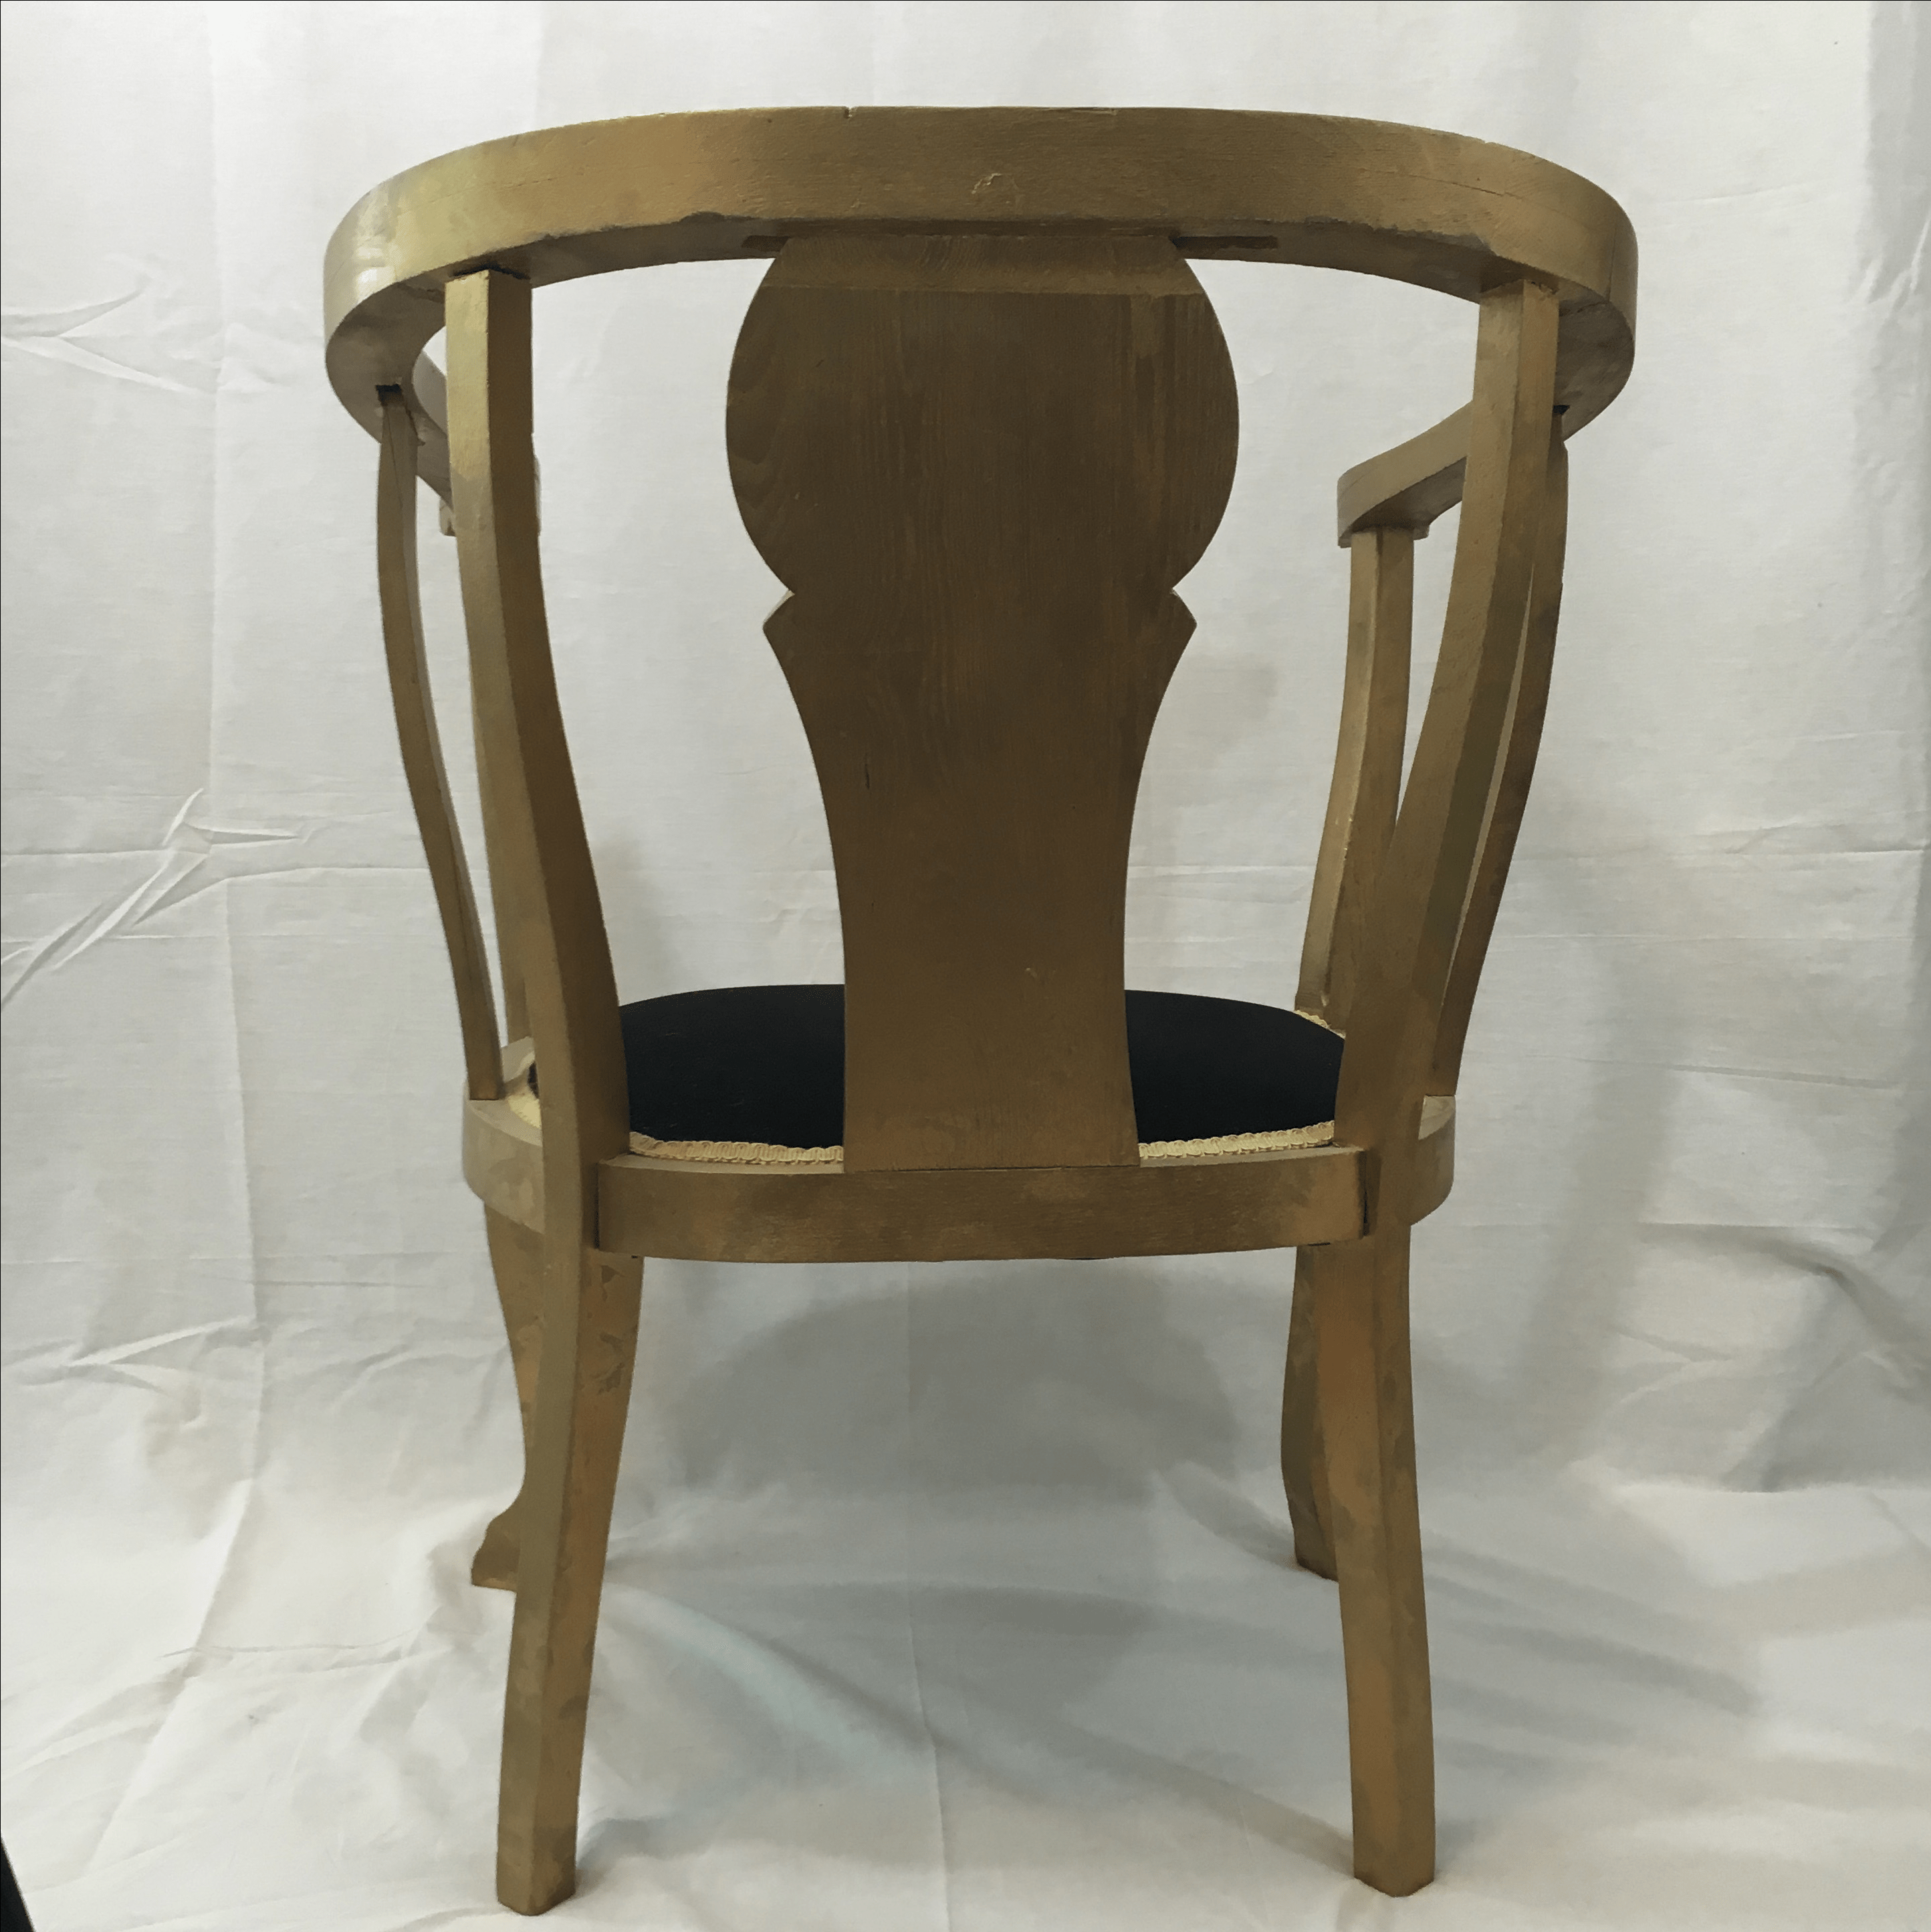 Gold Claw Foot Chair